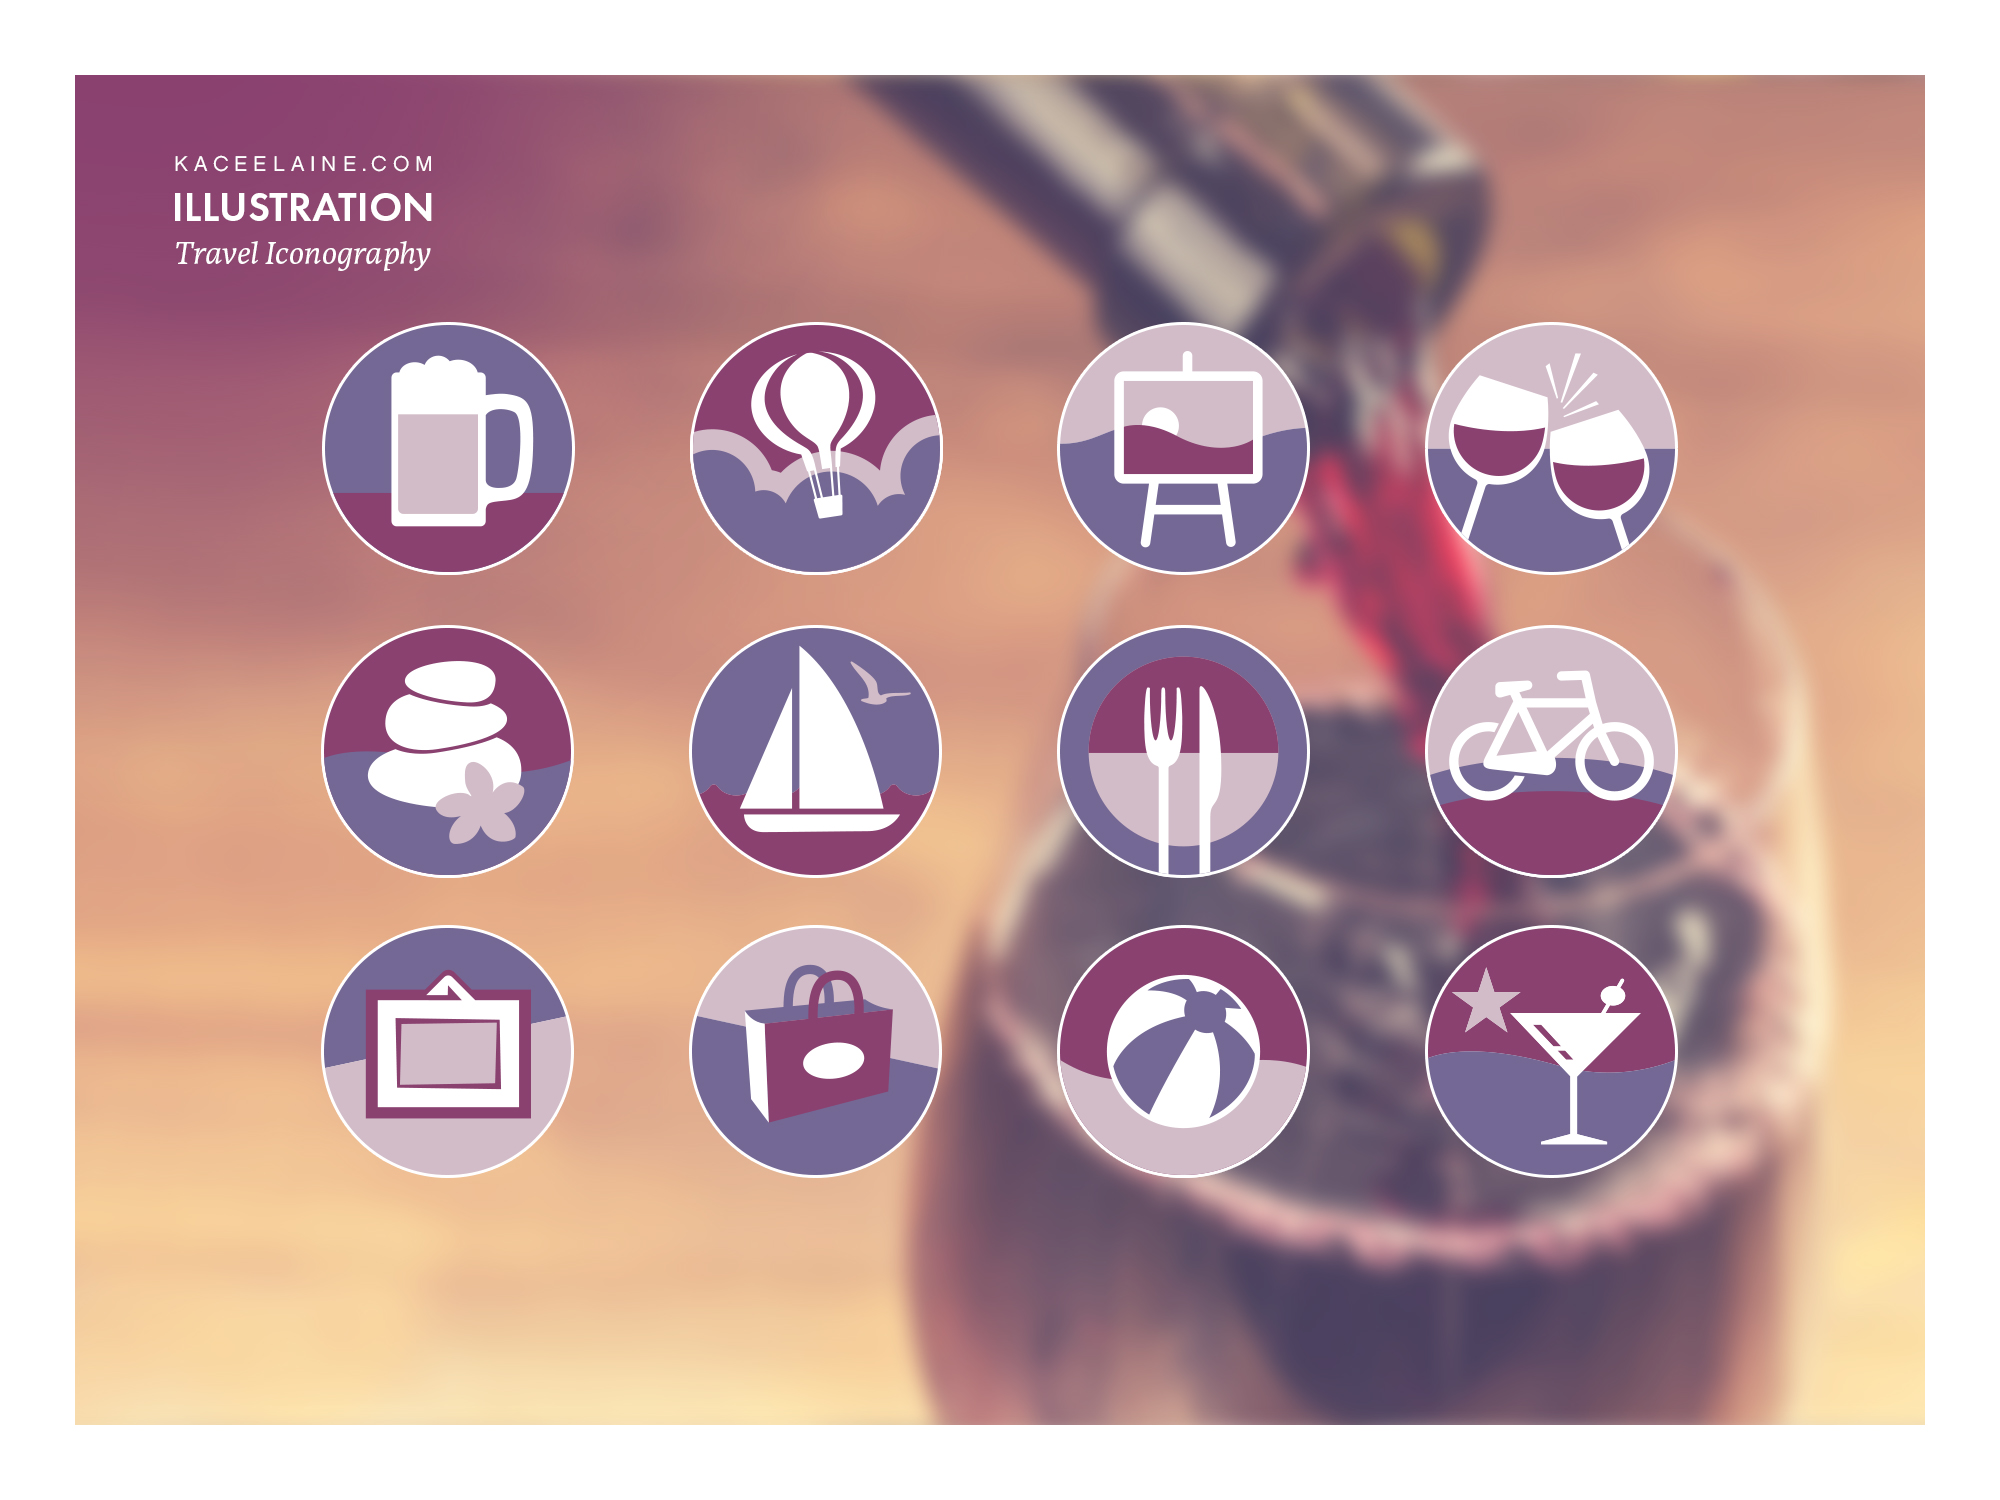 Travel Iconography Illustration